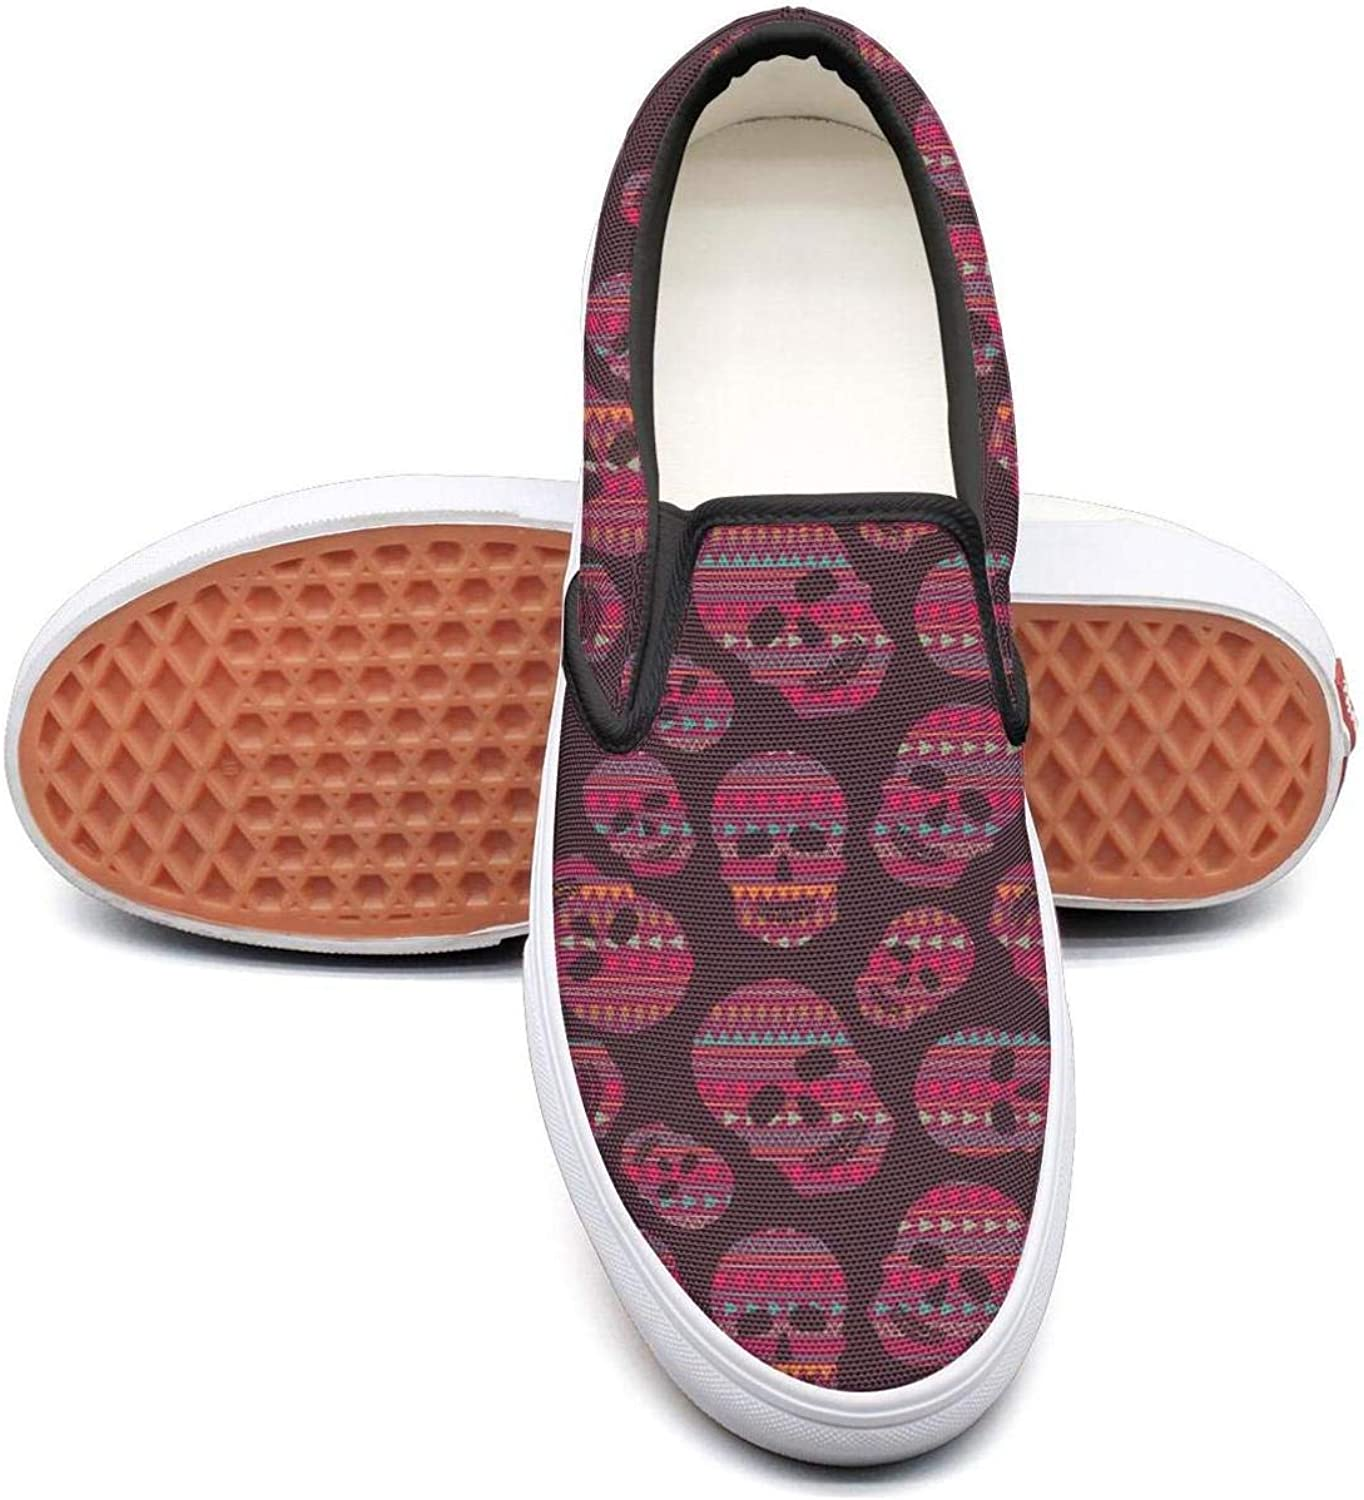 Red Skulls Slip On Canvas Upper Loafers Canvas shoes for Women Round Toe